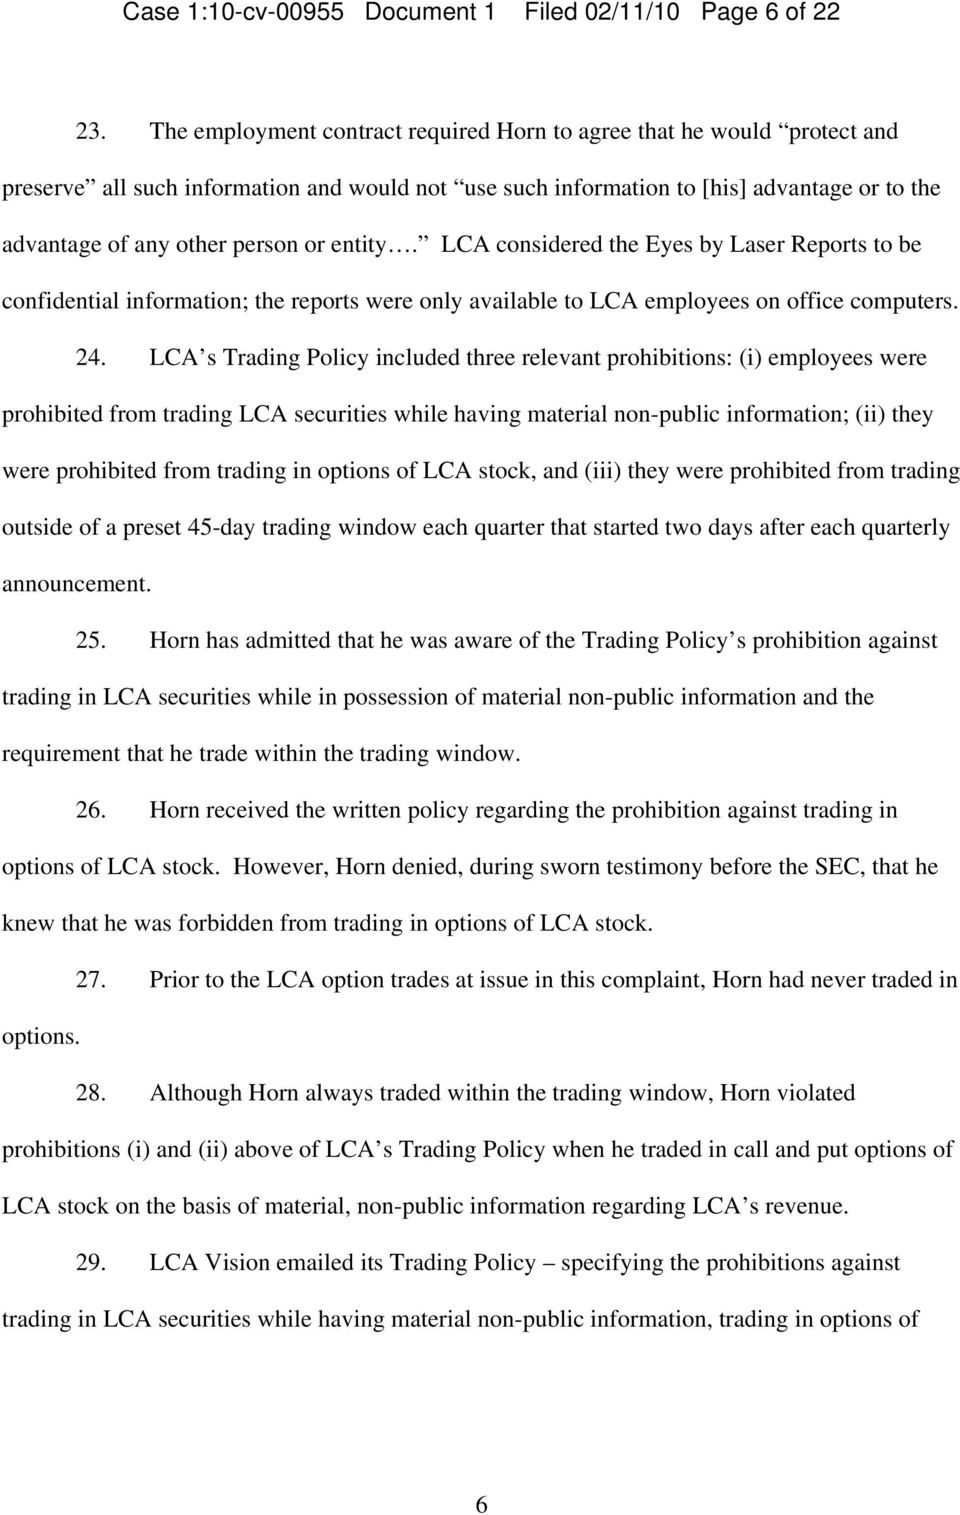 entity. LCA considered the Eyes by Laser Reports to be confidential information; the reports were only available to LCA employees on office computers. 24.